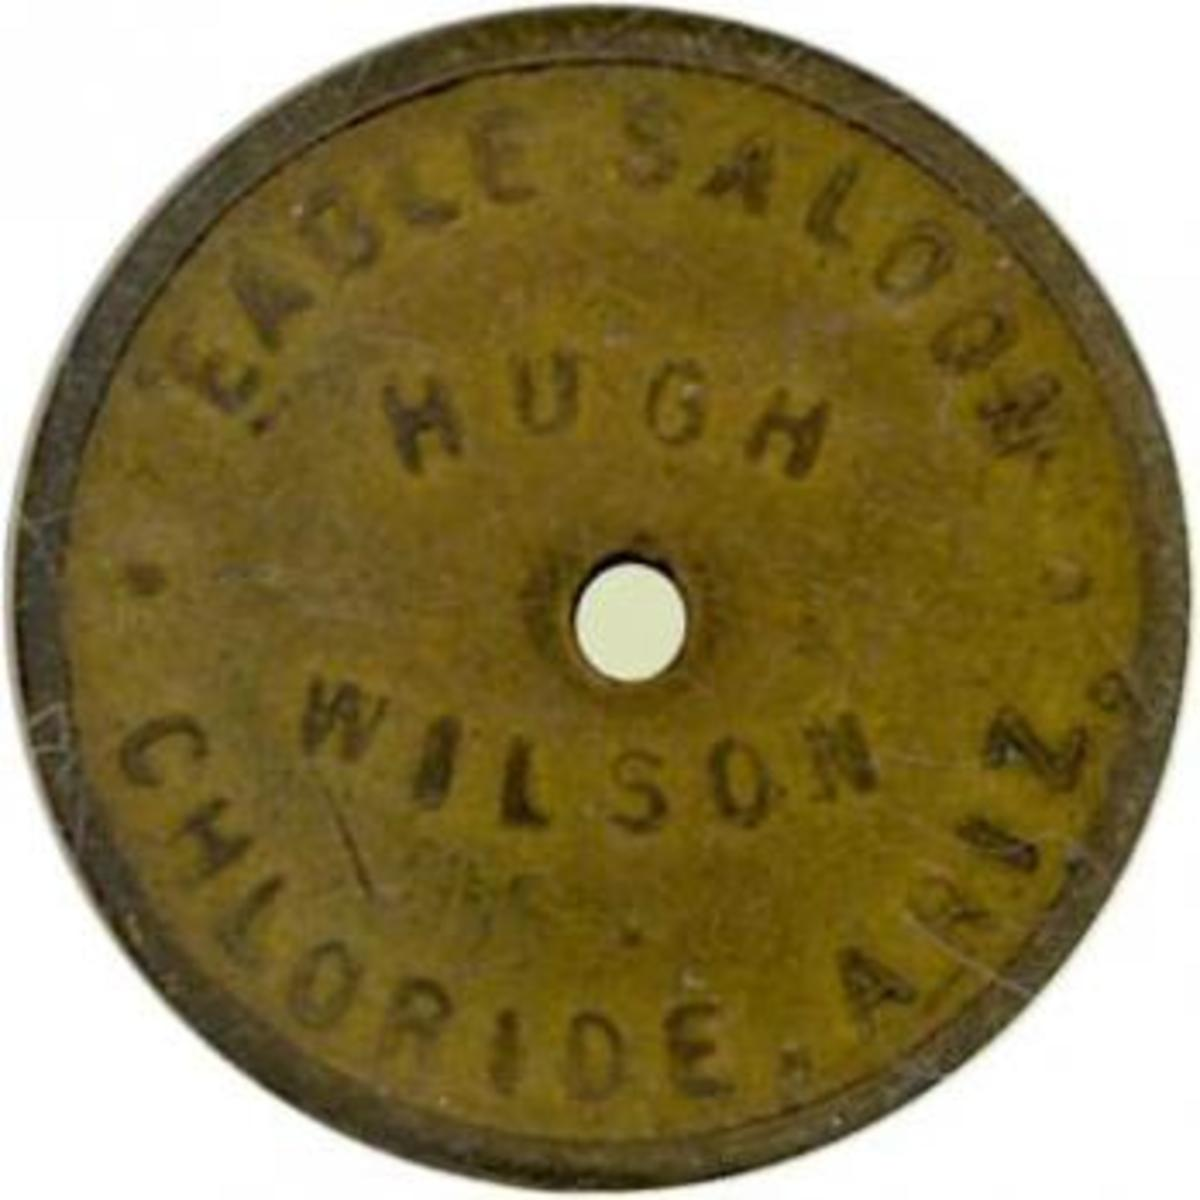 An Introduction to Collecting Antique Saloon Tokens